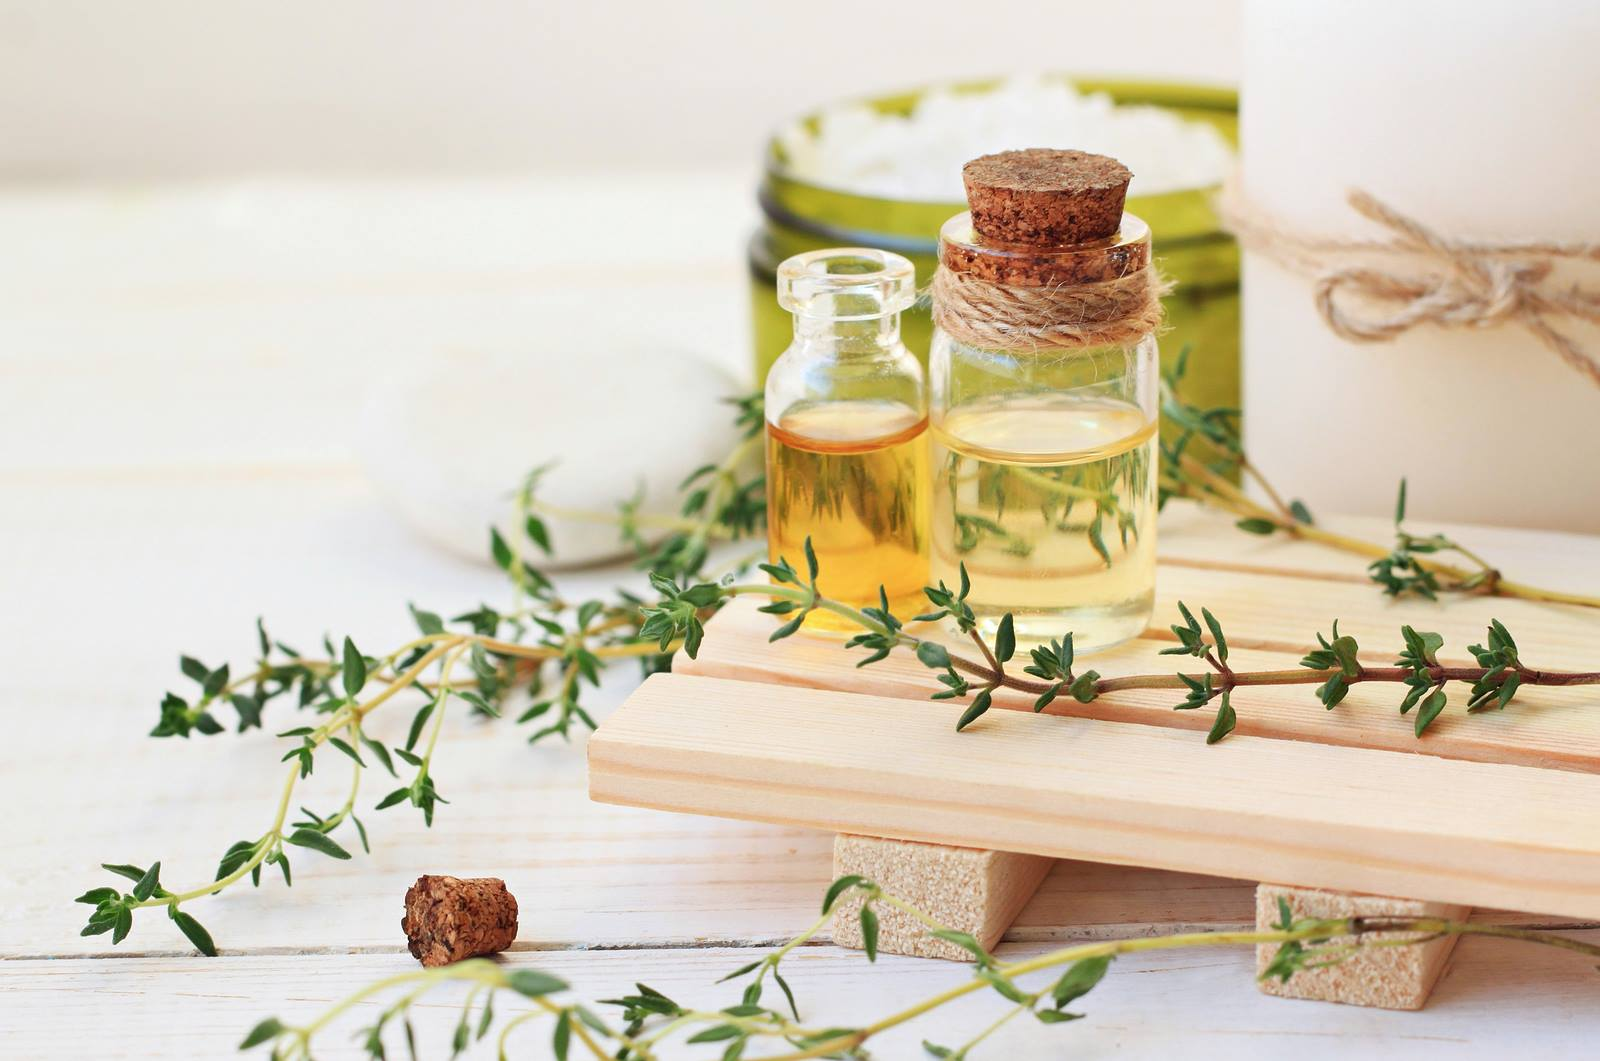 - To understand how to use essential oils we should be able to understand: What are essential oils?